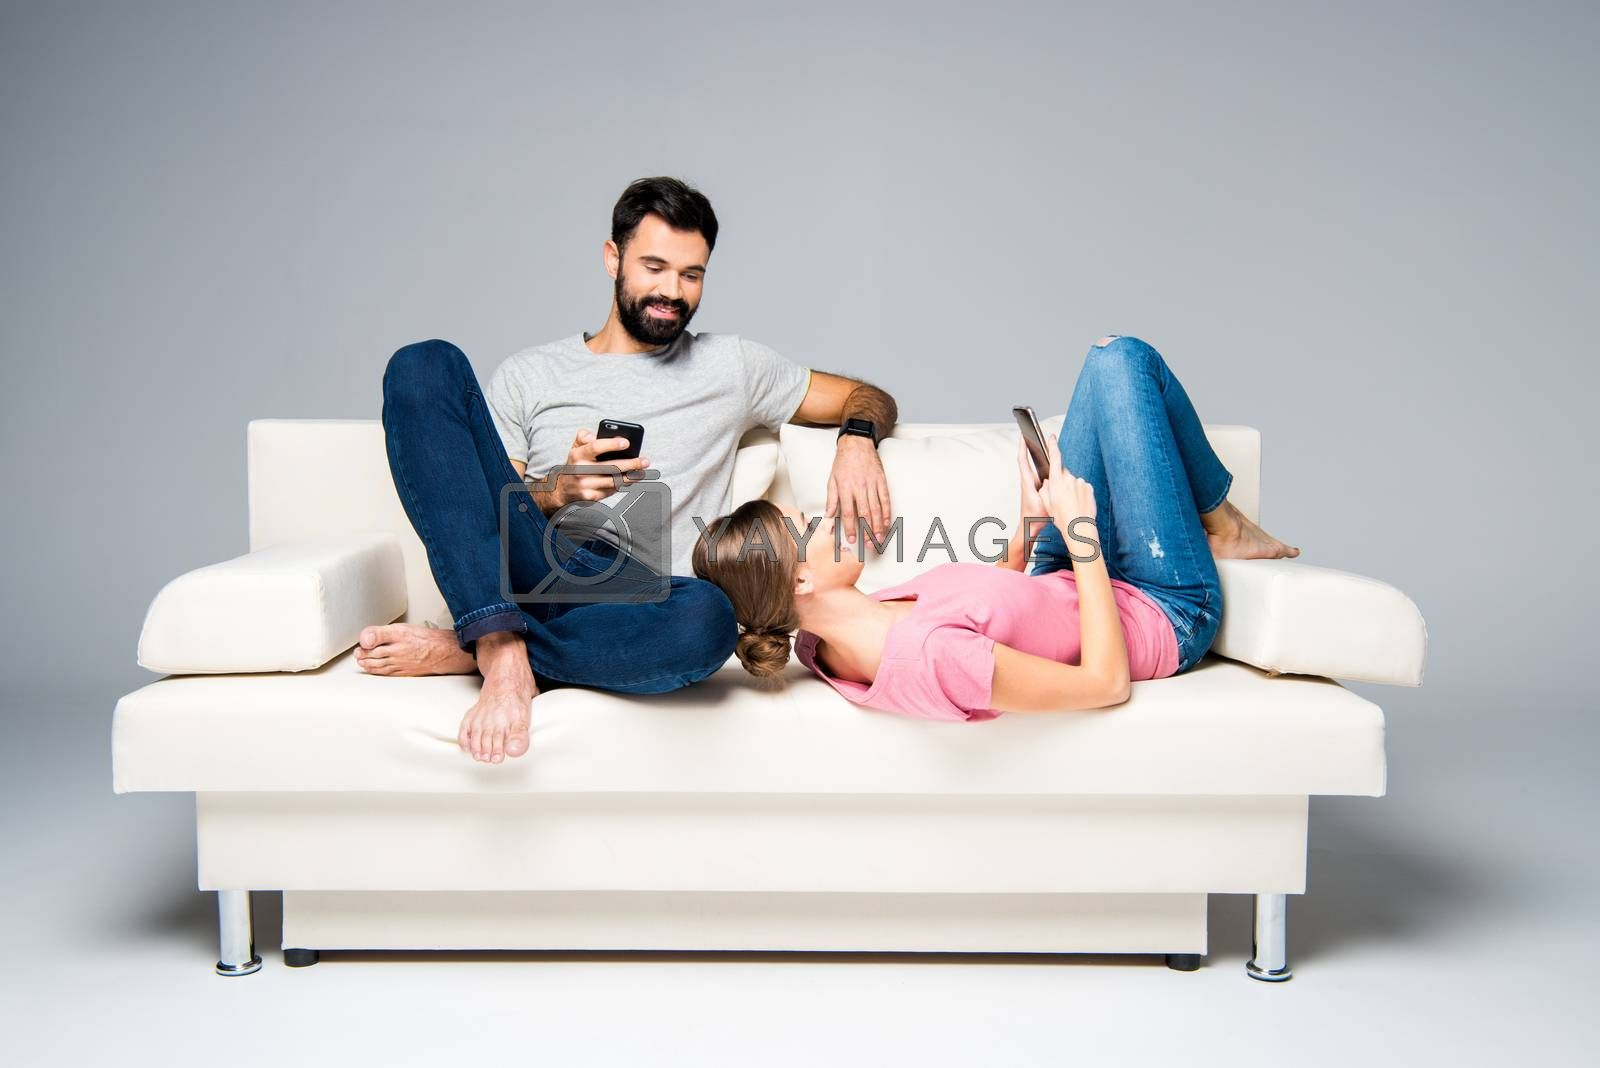 Young couple resting on white couch and using smartphones